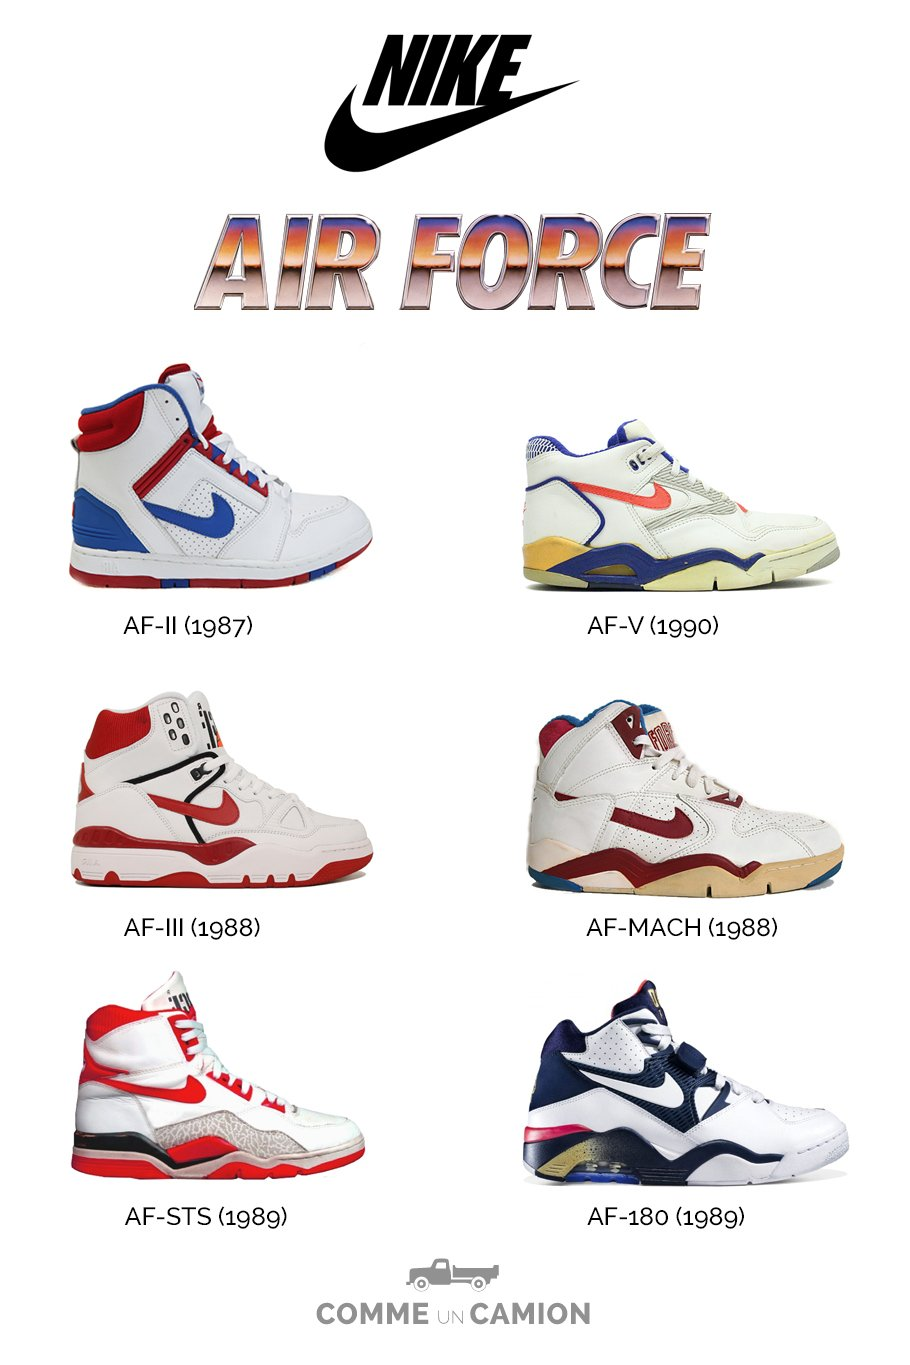 nike air force timeline